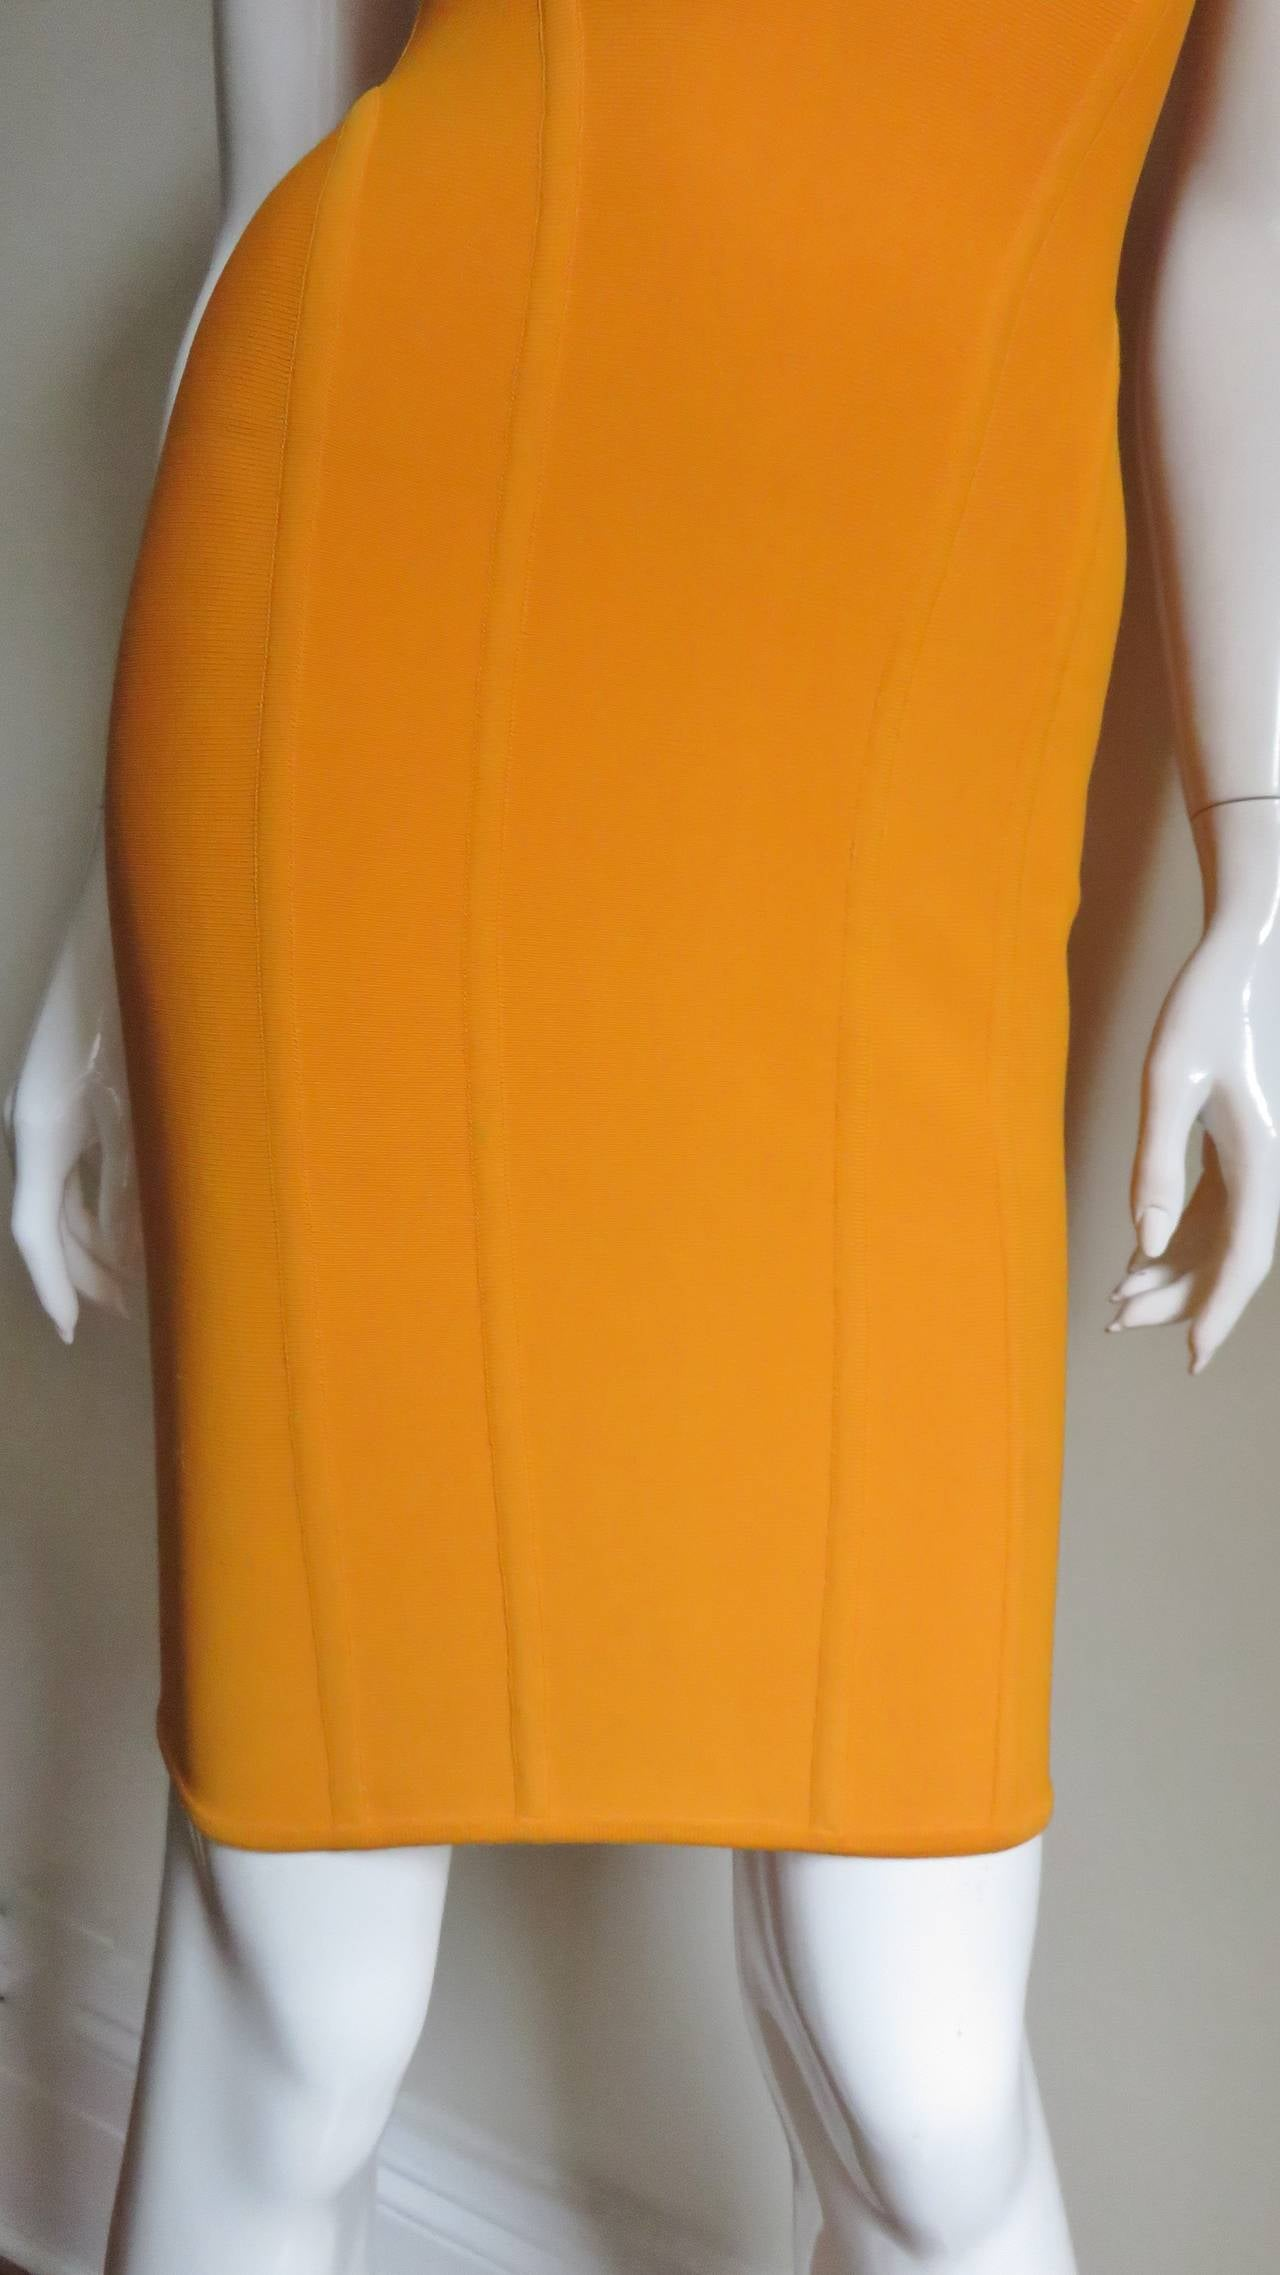 Vintage Herve Leger Bodycon Dress In New never worn Condition For Sale In New York, NY